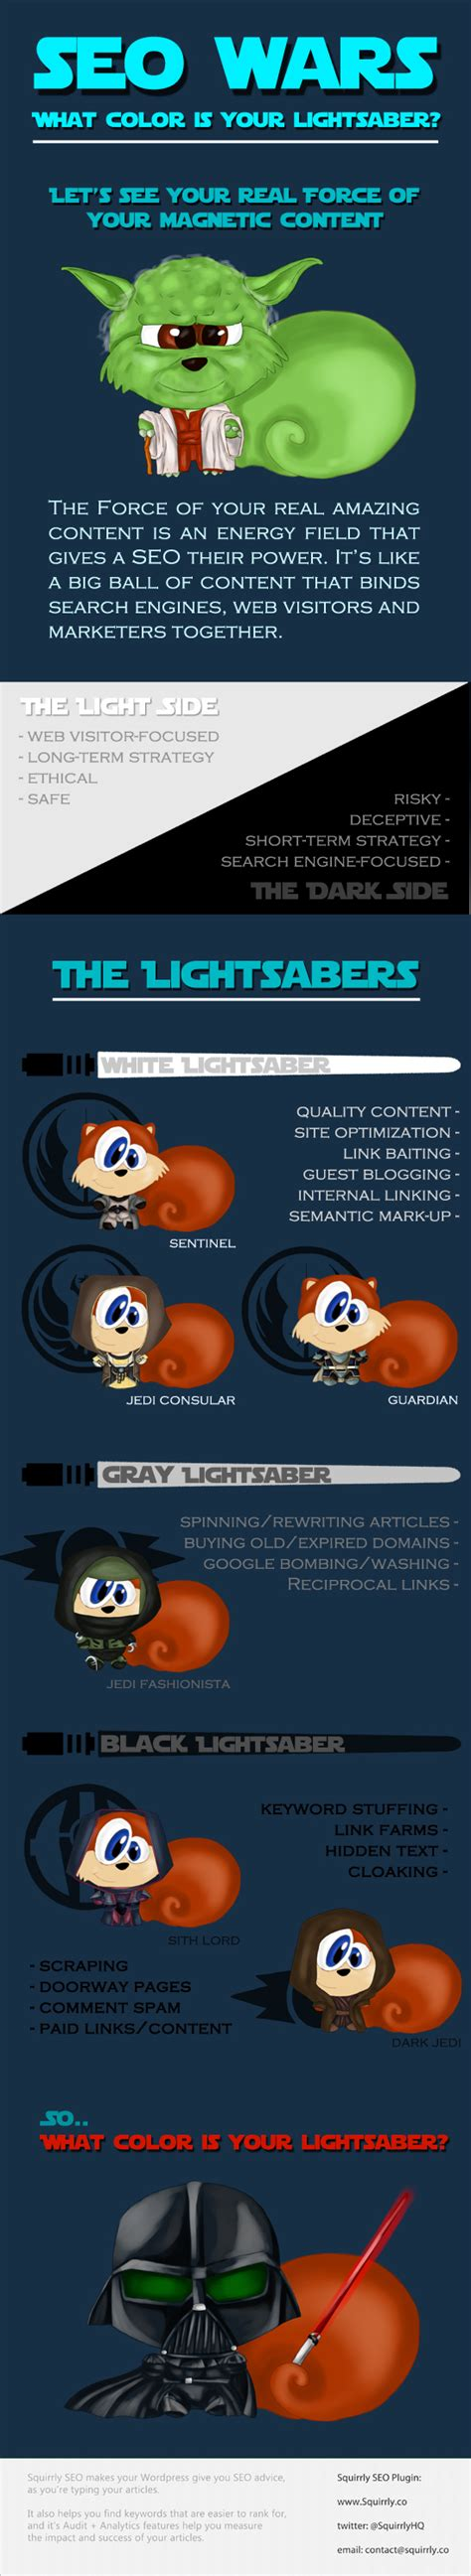 what color is your lightsaber seo wars what color is your lightsaber